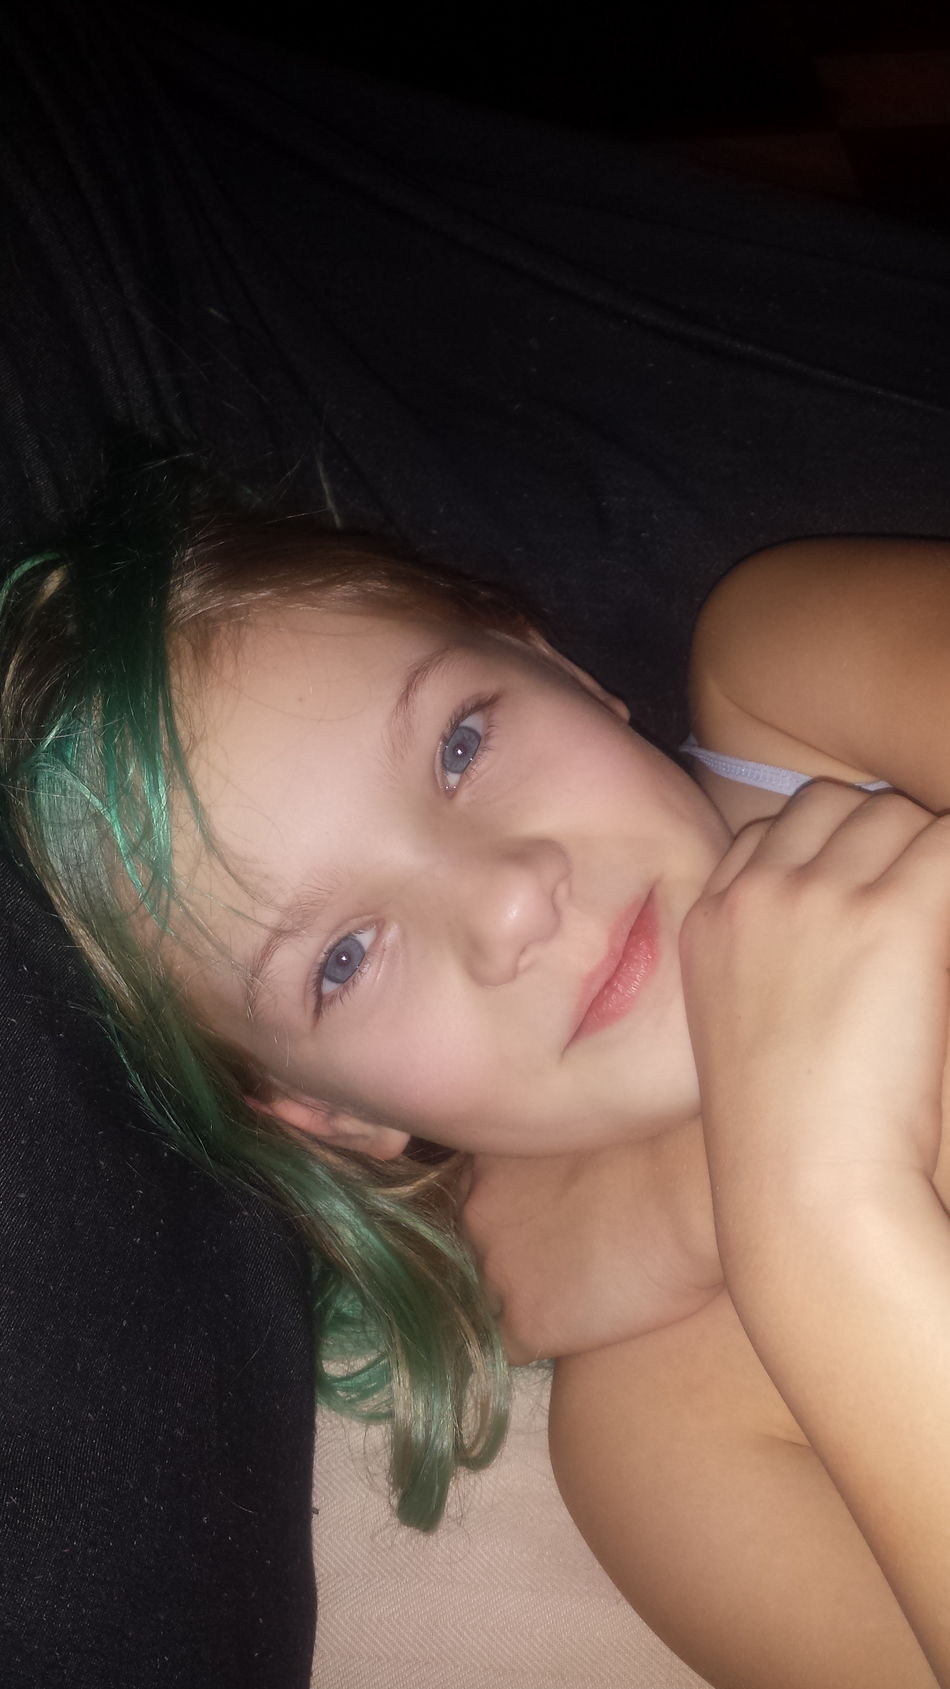 Daughter My Daughter ♥ My Baby Being Herself Beauty